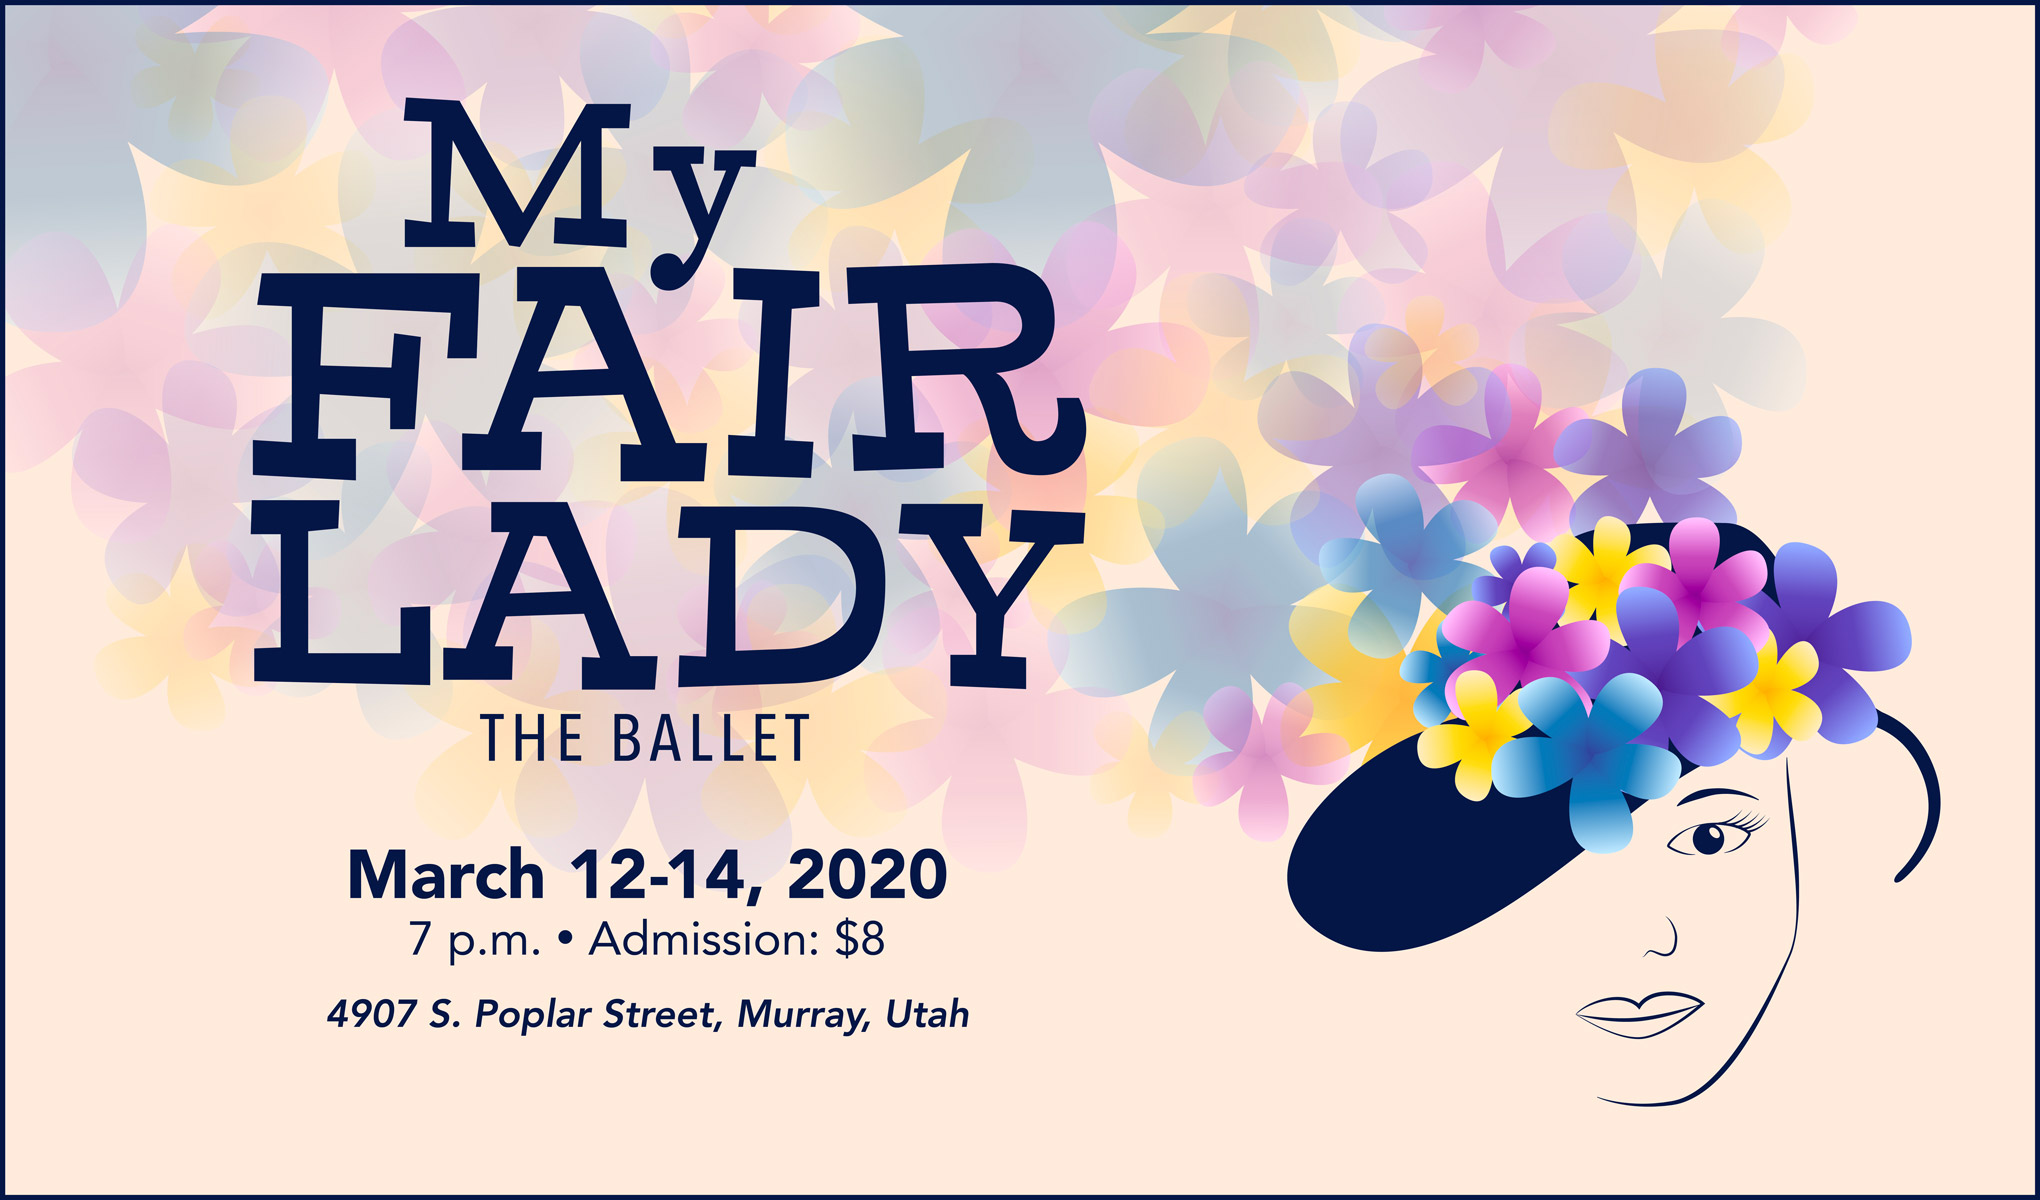 My Fair Lady The Ballet, March 12-14, 2020